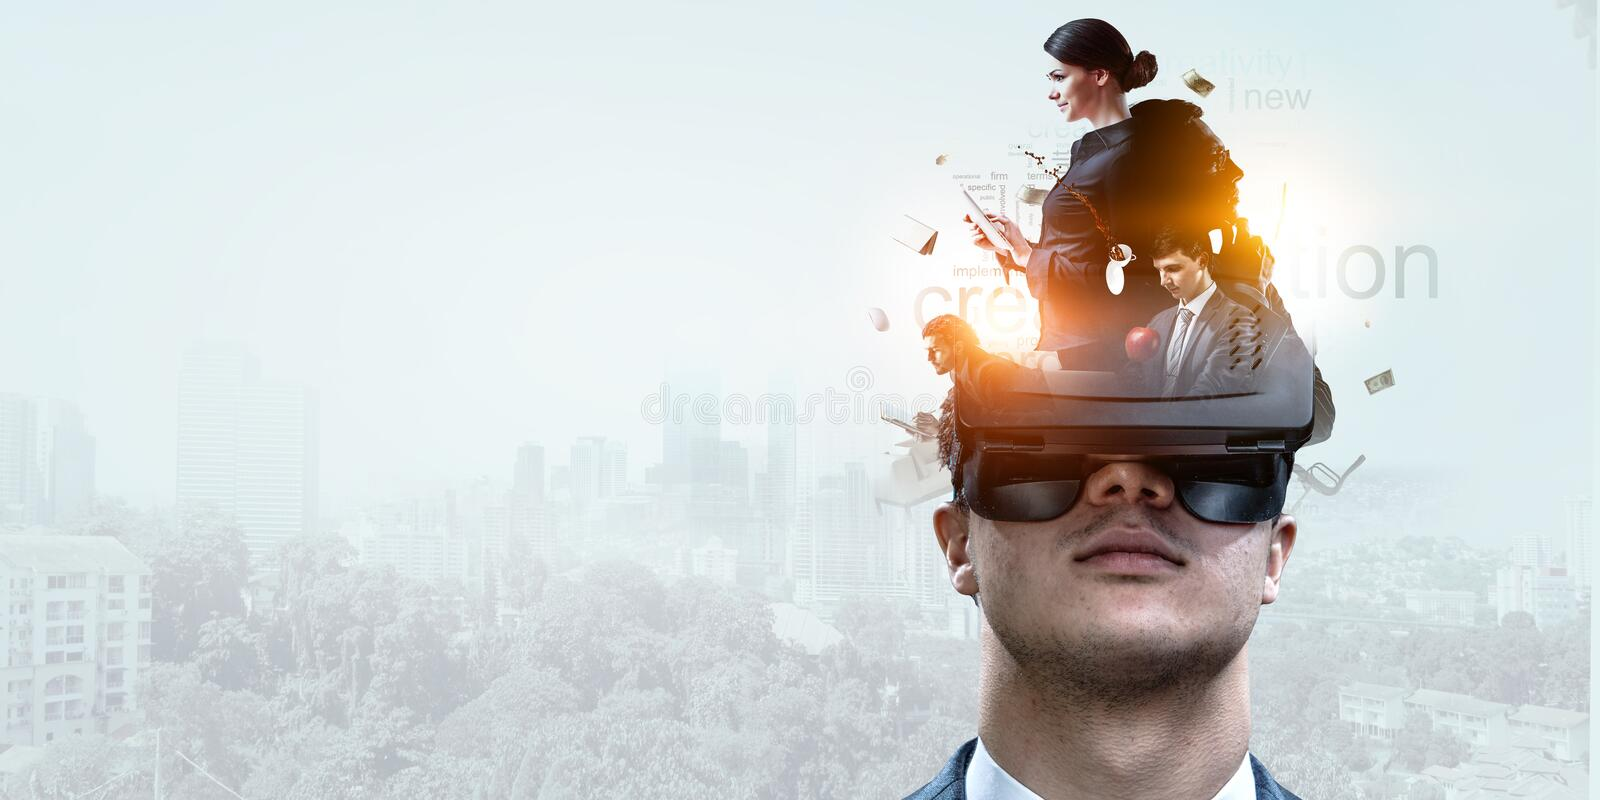 Abstract image of virtual reality experience, a man in VR glasses royalty free stock images